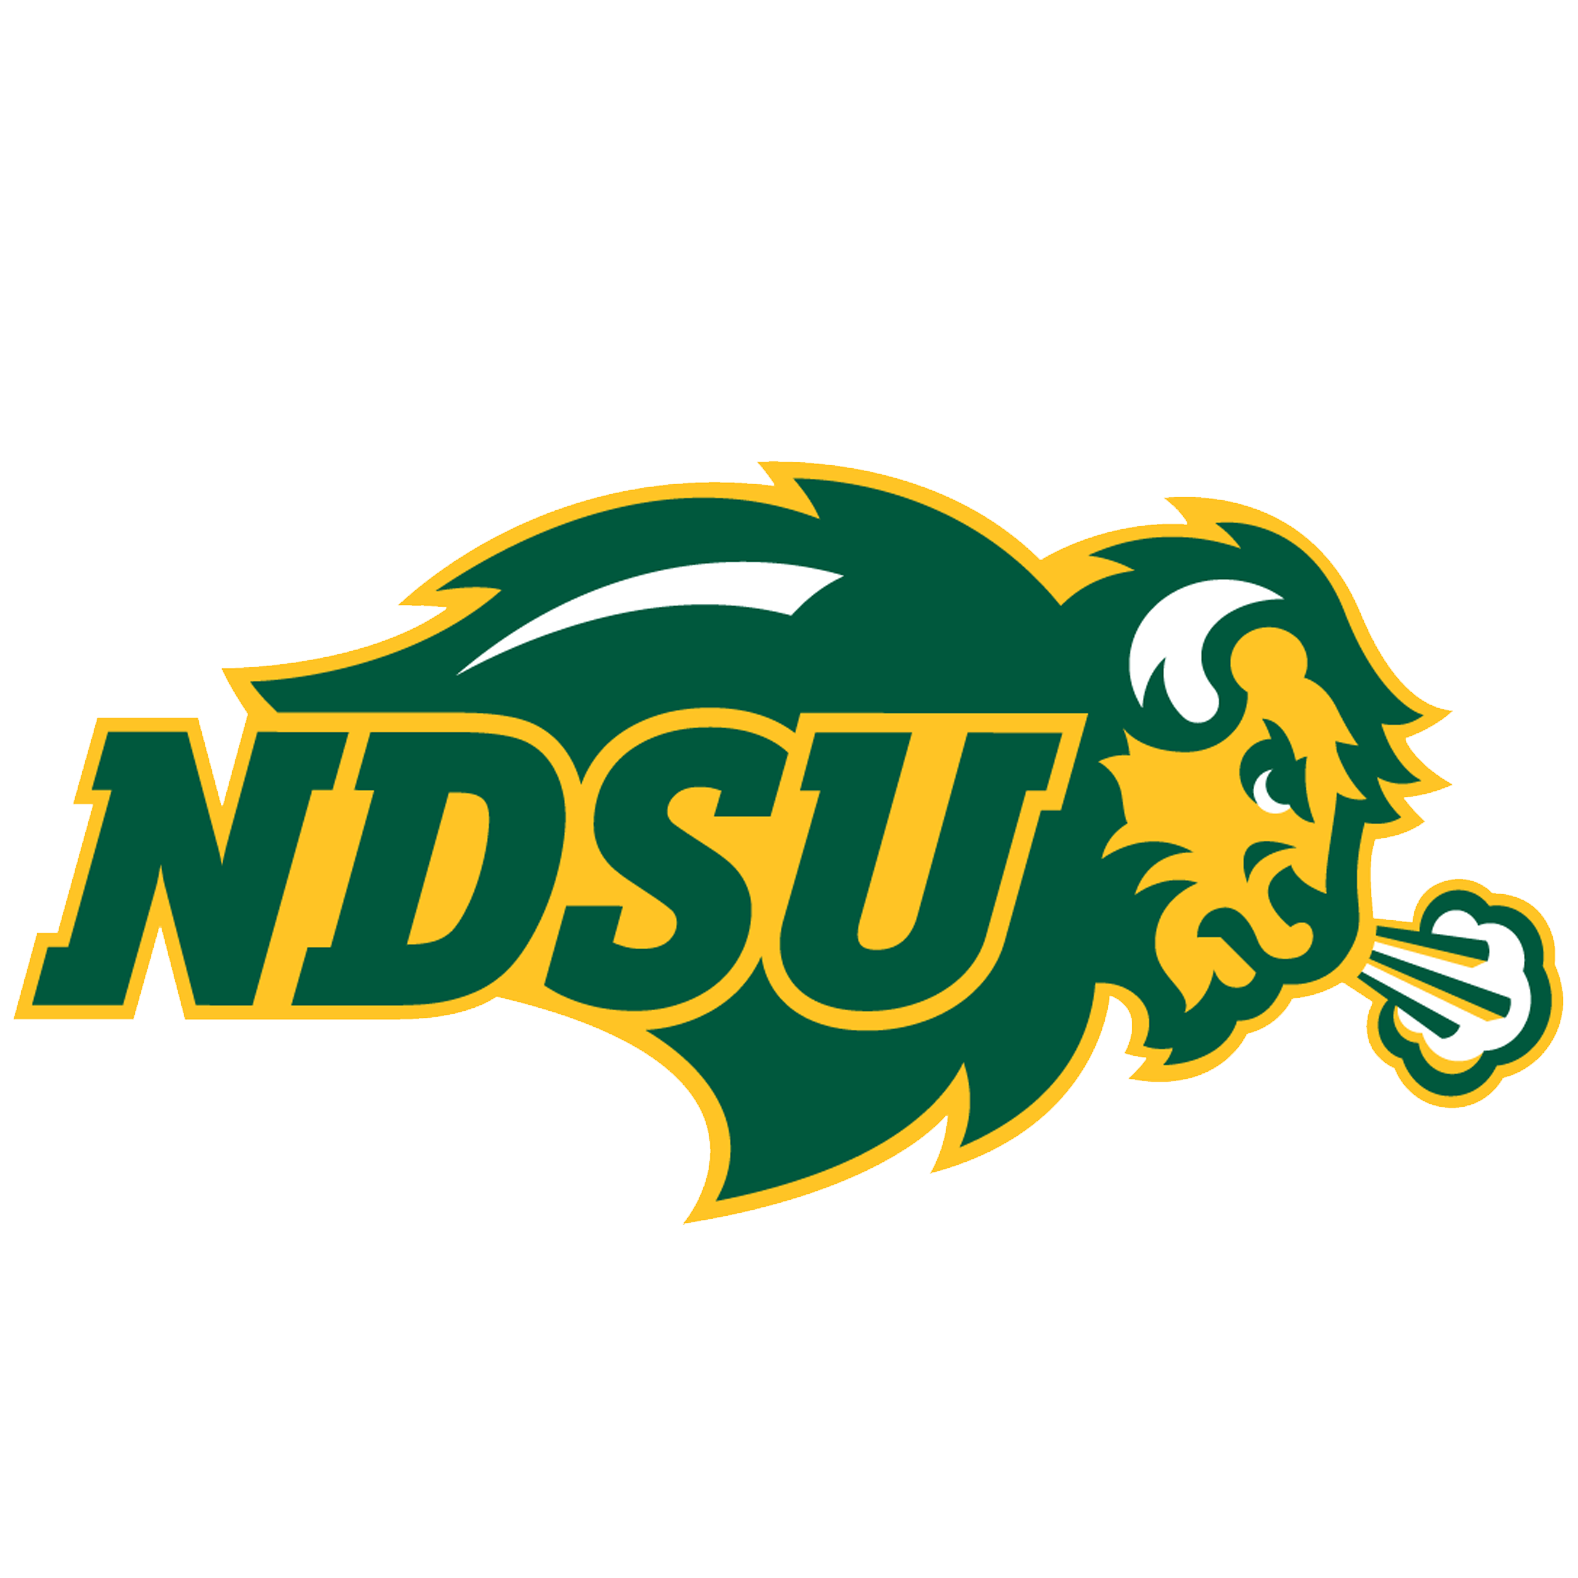 Ndsu Calendar 2022.National Heart Lung And Blood Institute At Ndsu Awarded 432k For Research Kx News